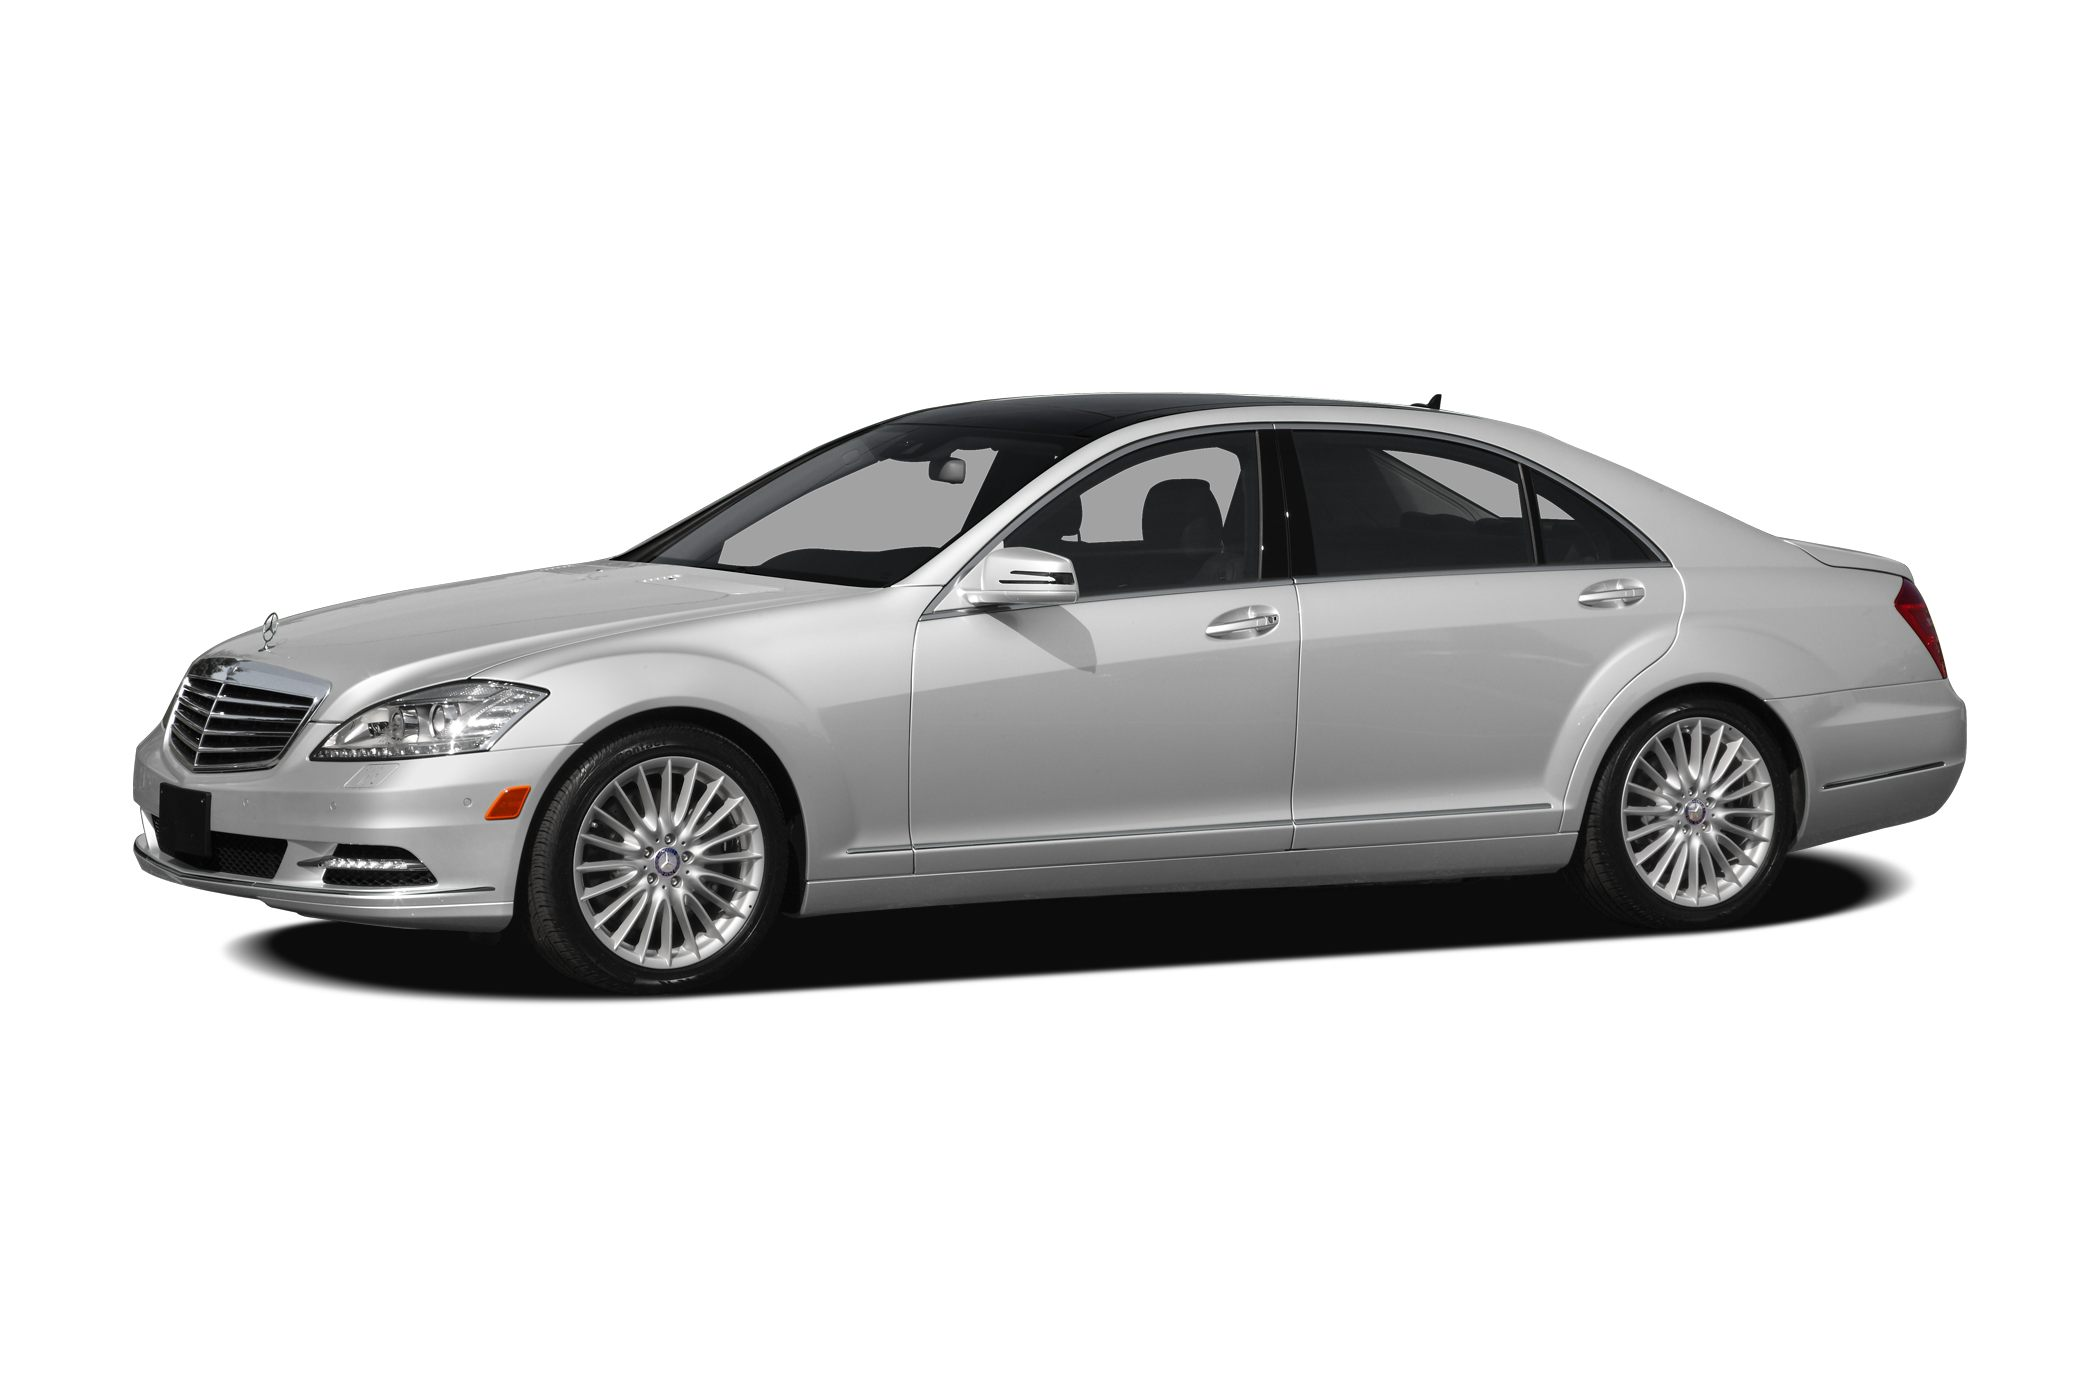 2010 MERCEDES S-Class S550 Miles 60280Stock L1249A VIN WDDNG7BBXAA345479